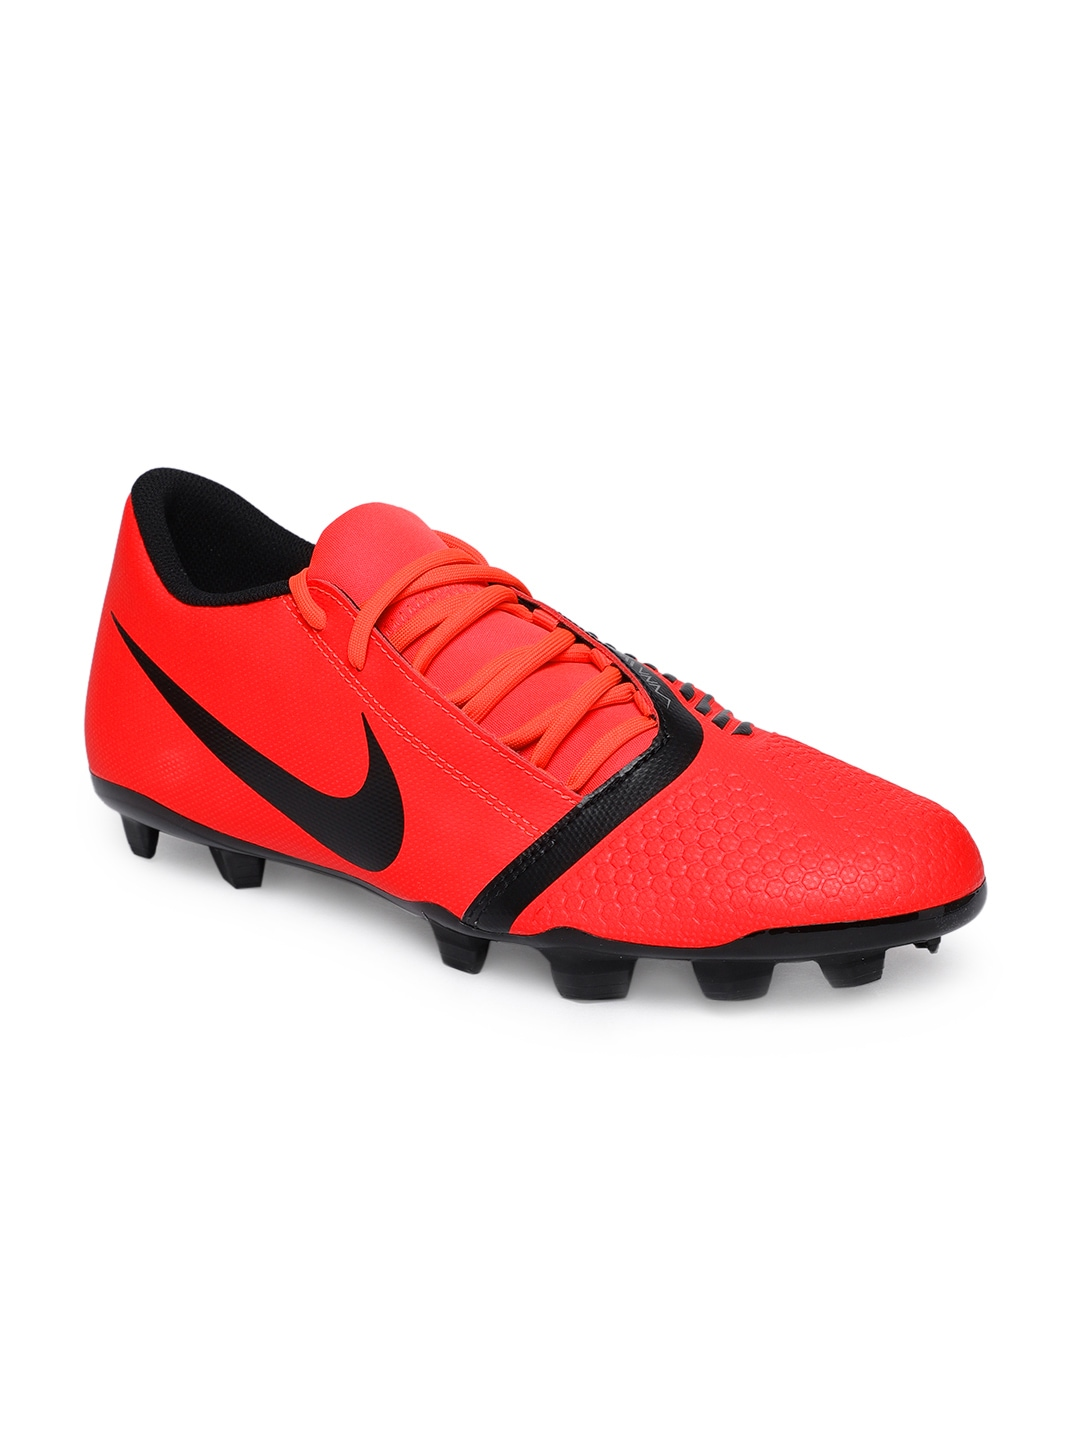 849232218b3 Football Shoes - Buy Football Studs Online for Men   Women in India